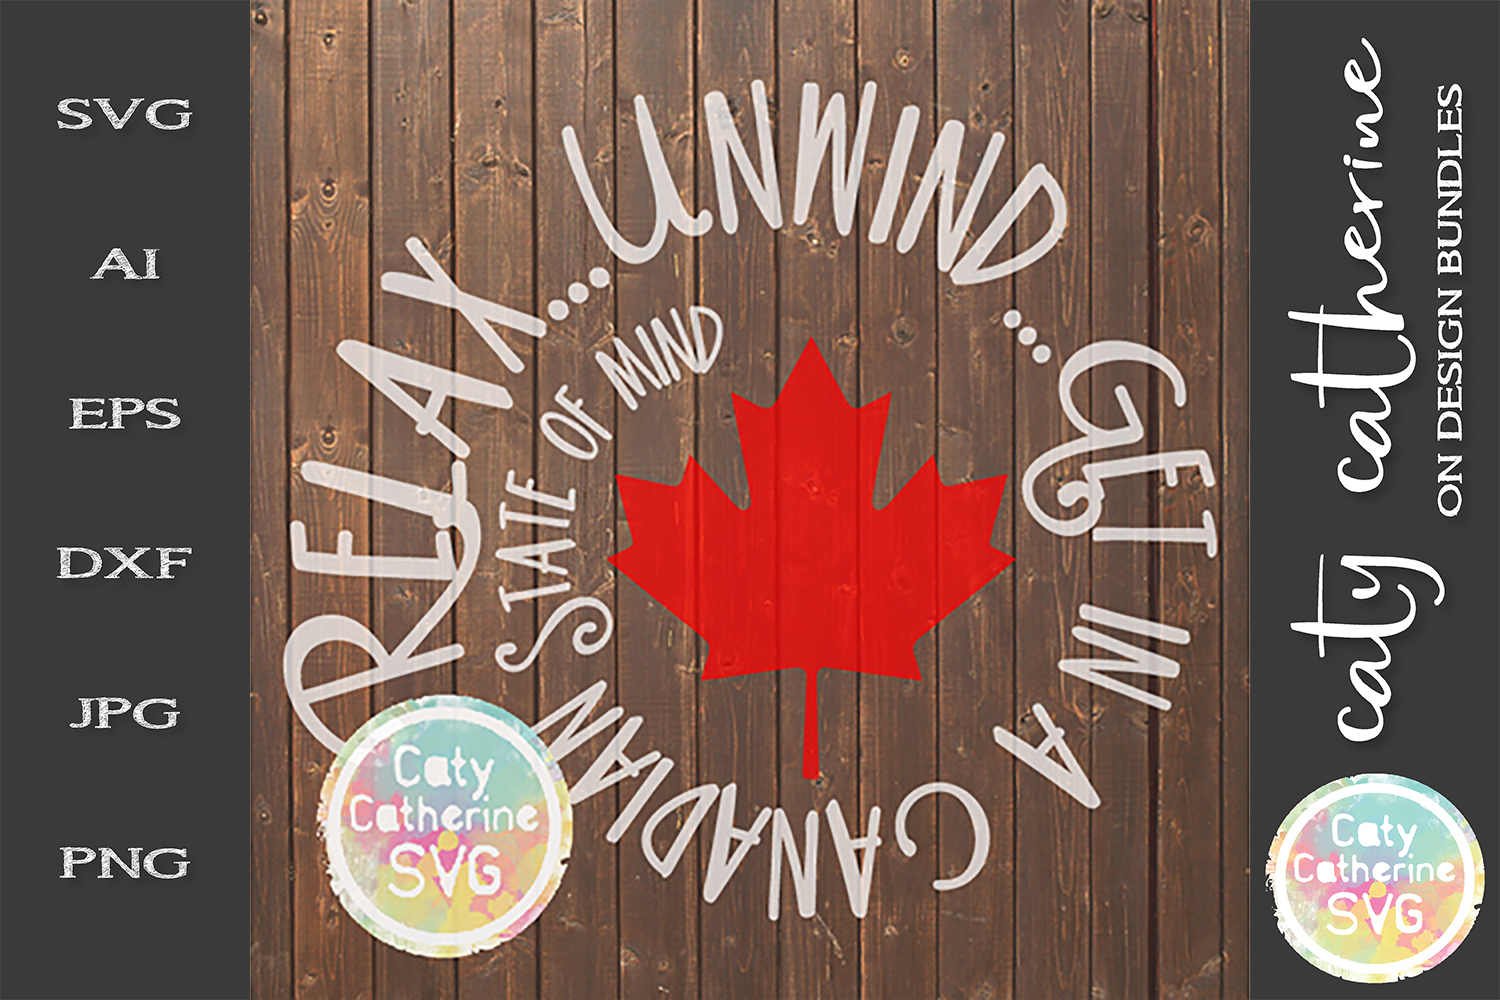 Relax Unwind Get In A Canadian State Of Mind SVG Cut File example image 1